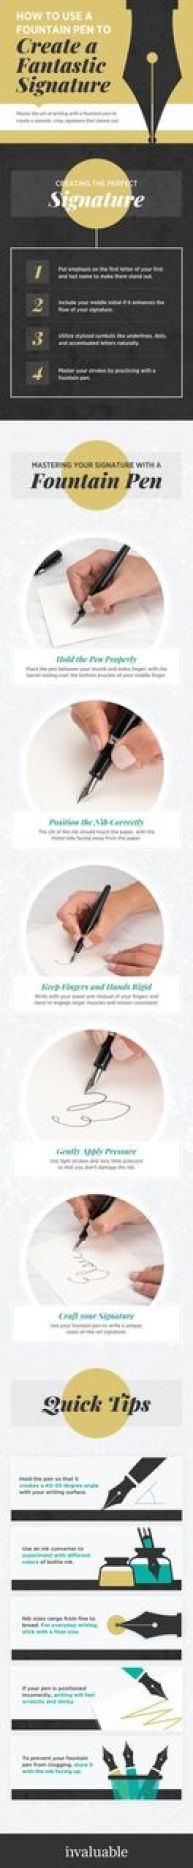 Fountain pen infographic